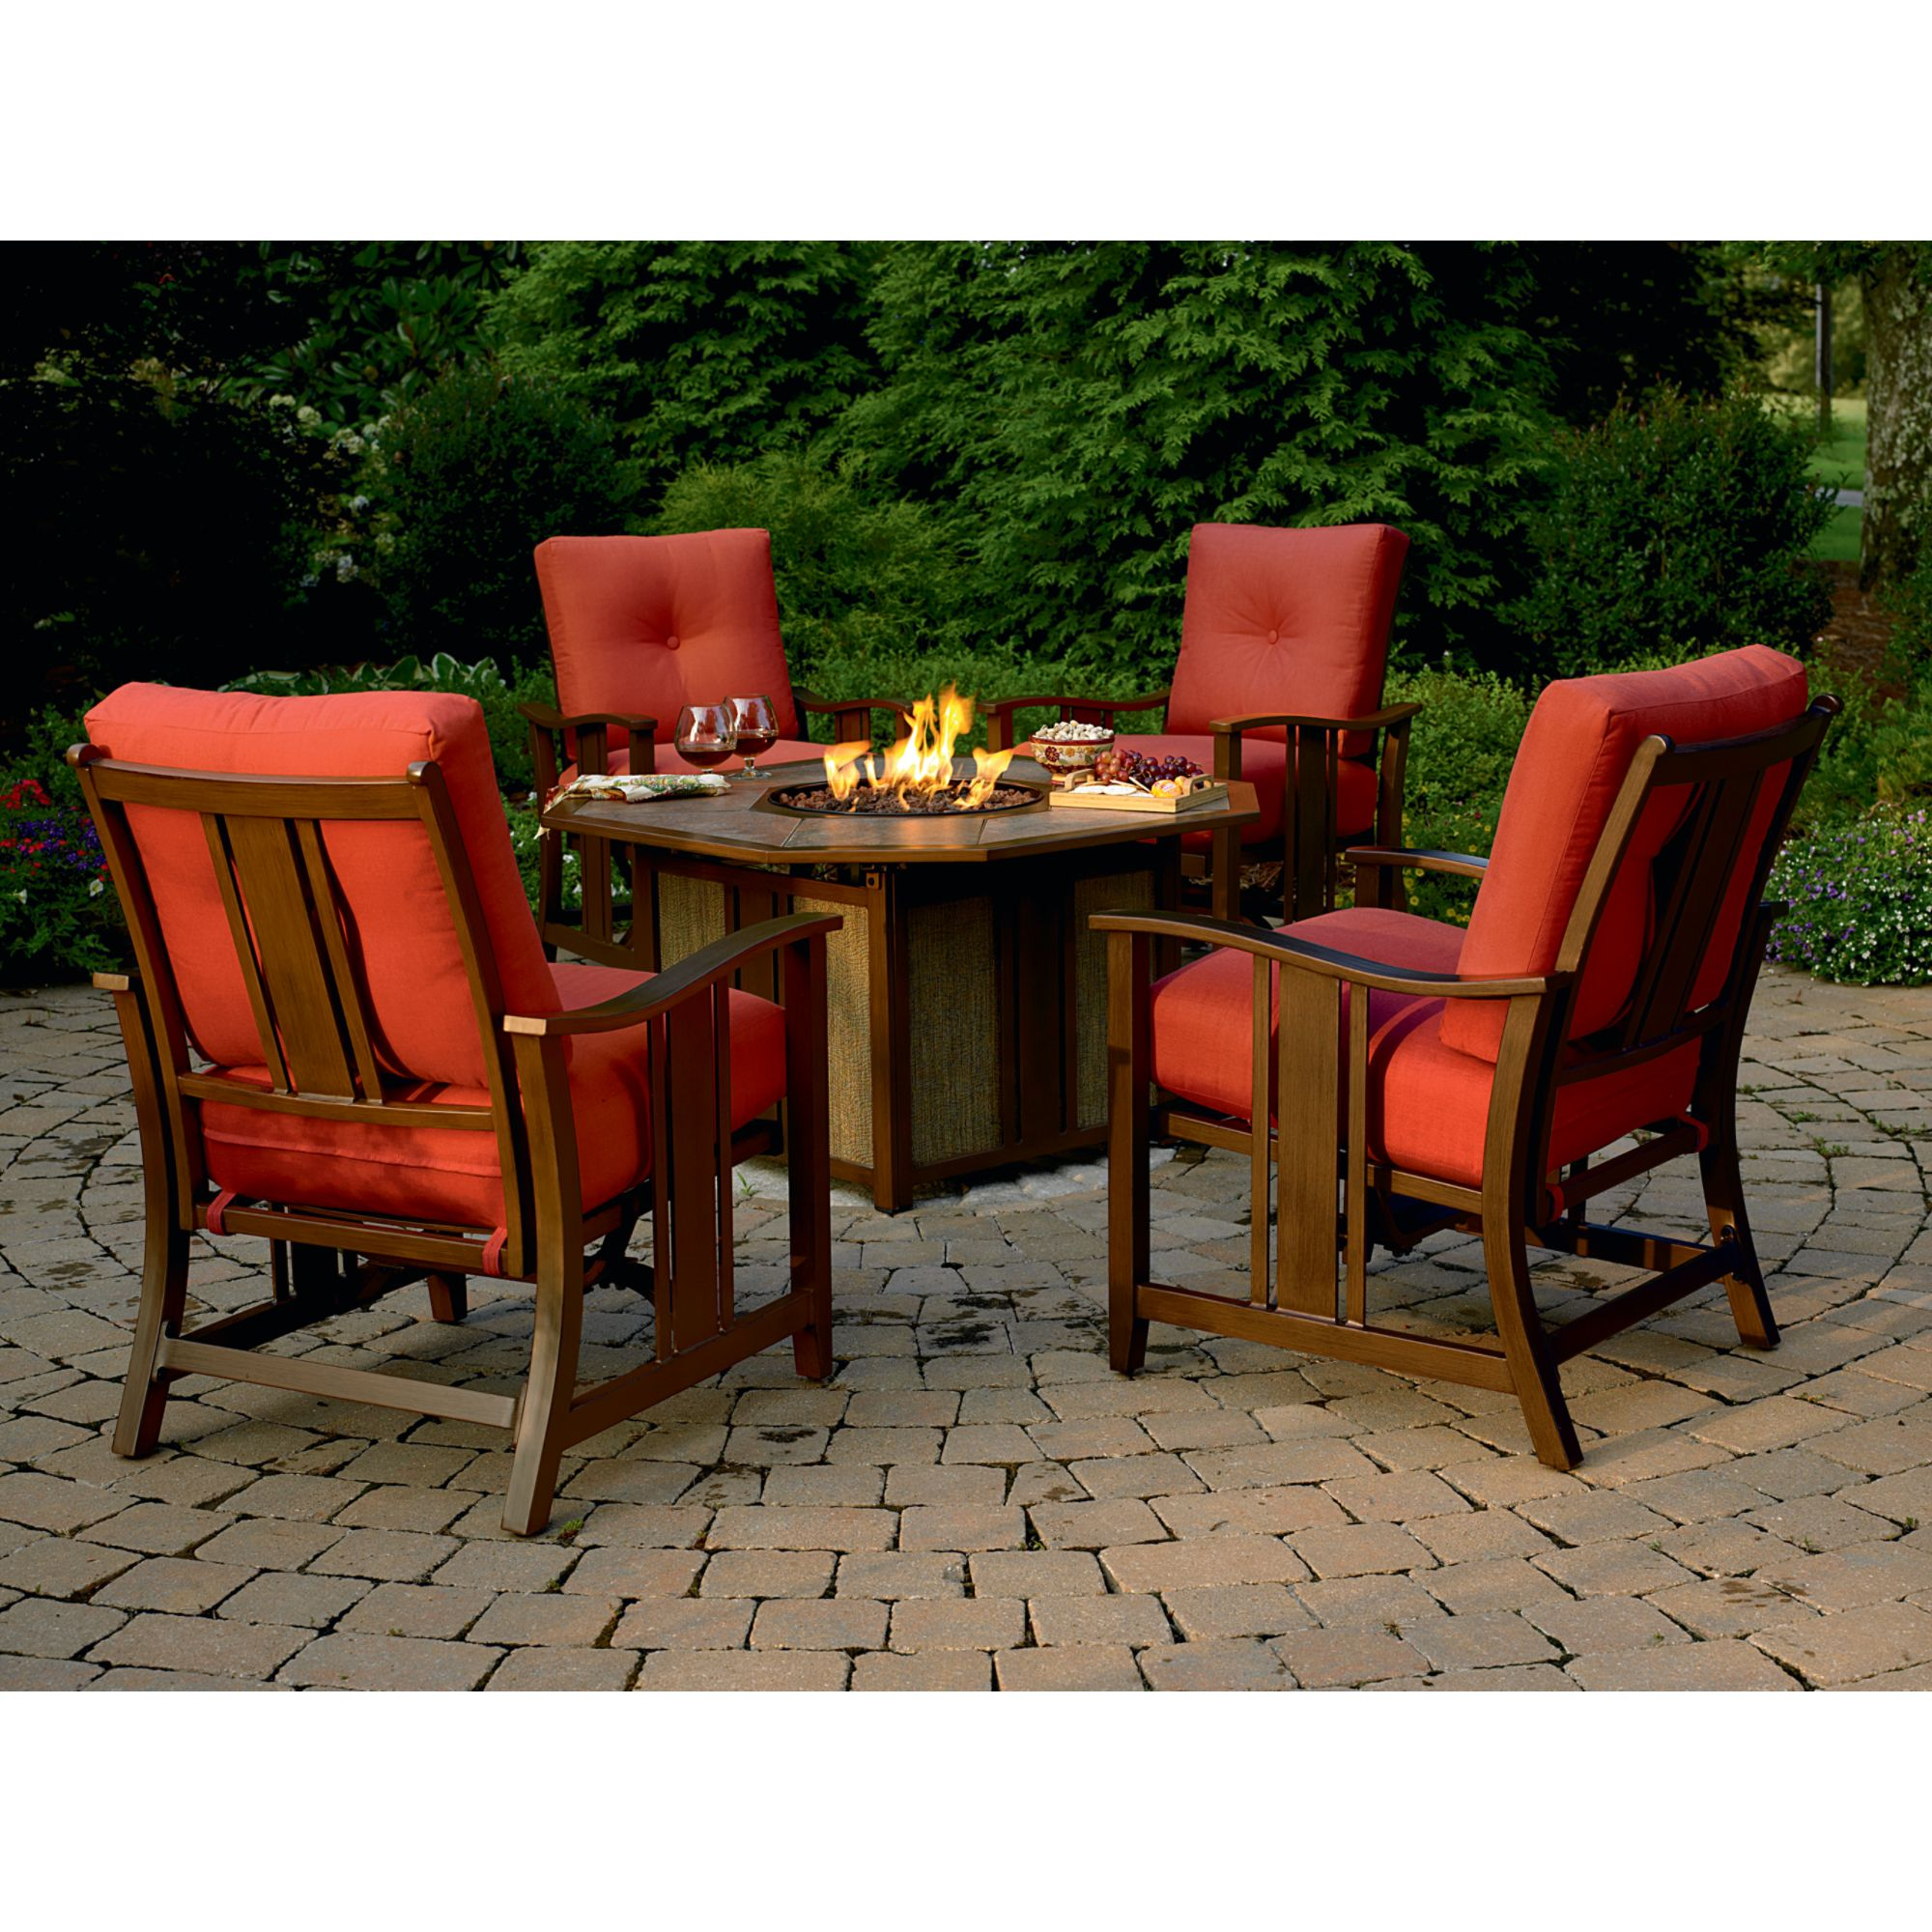 Patio with Fire Pit Chat Set